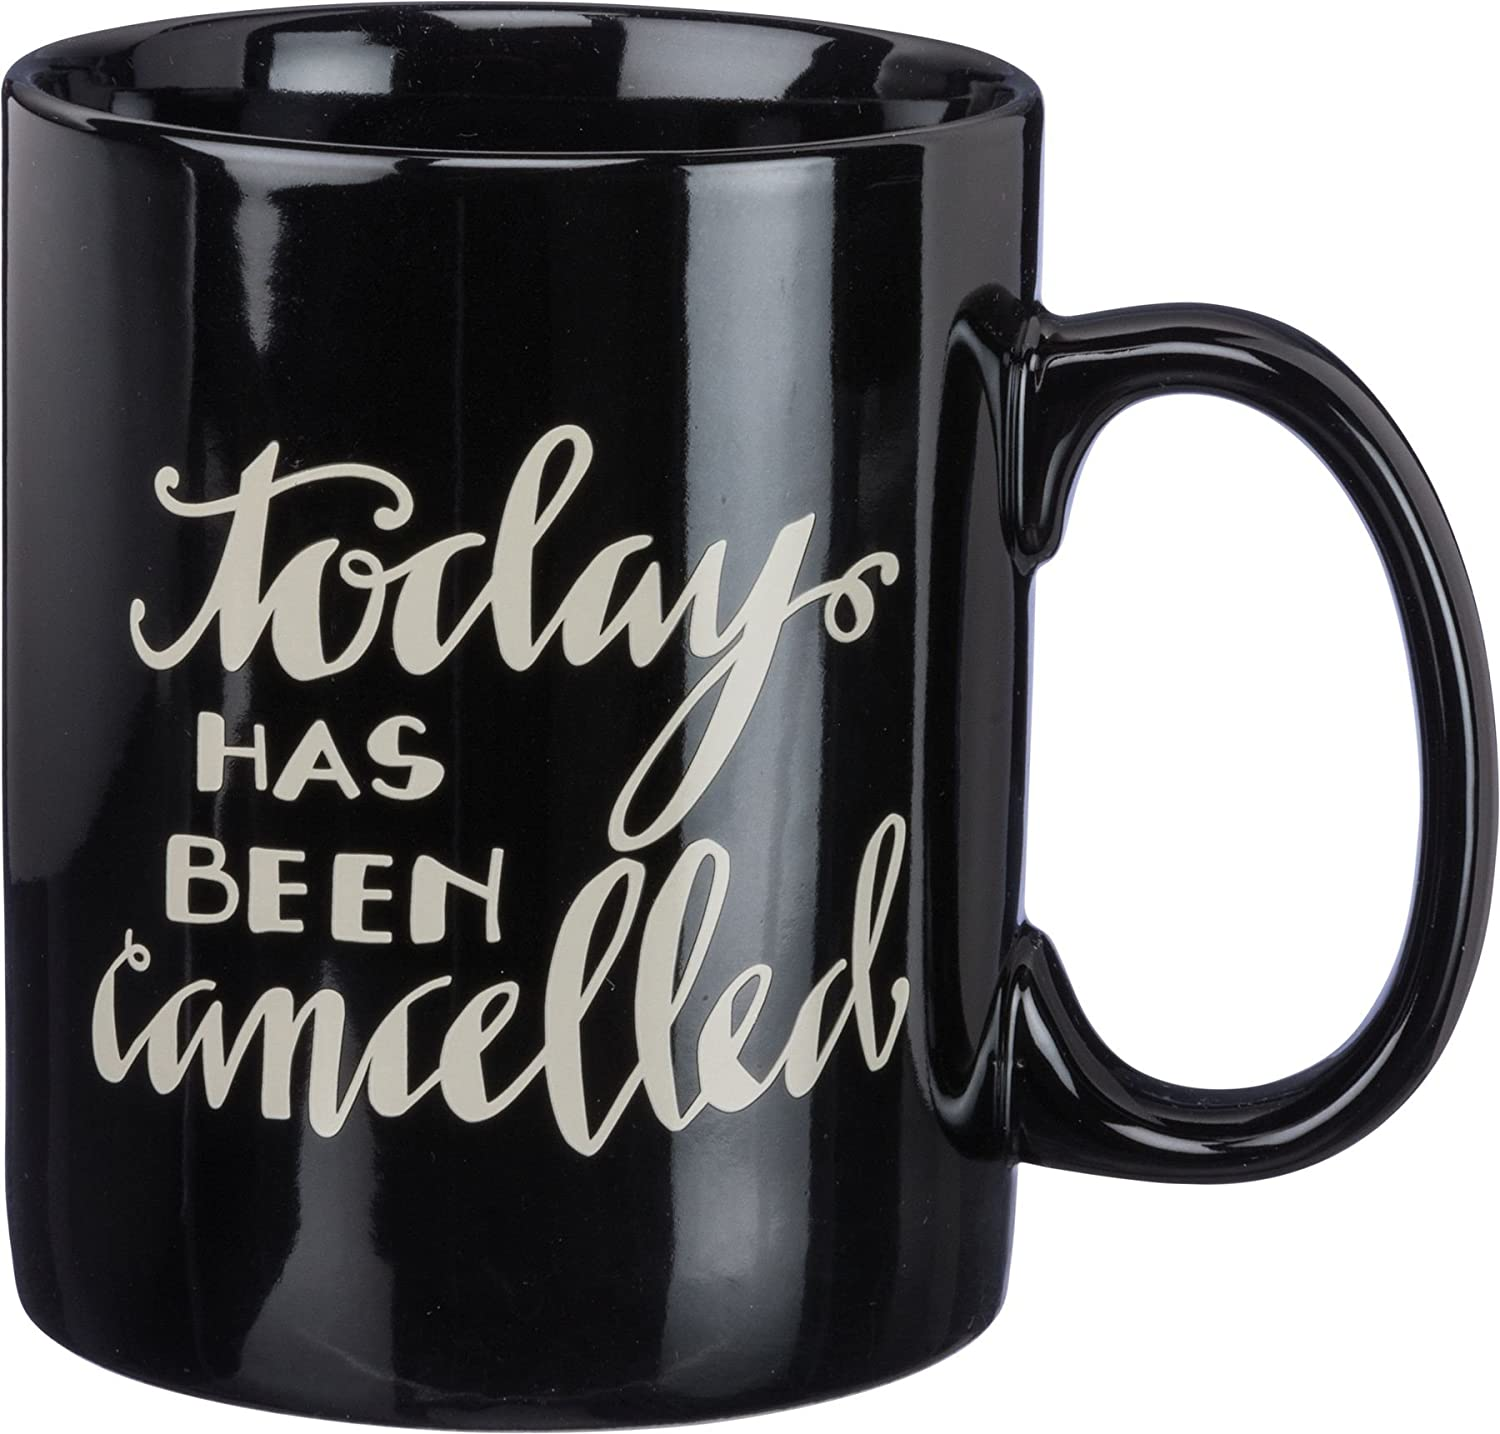 Today has been Cancelled Primitive by Kathy Coffee Mug